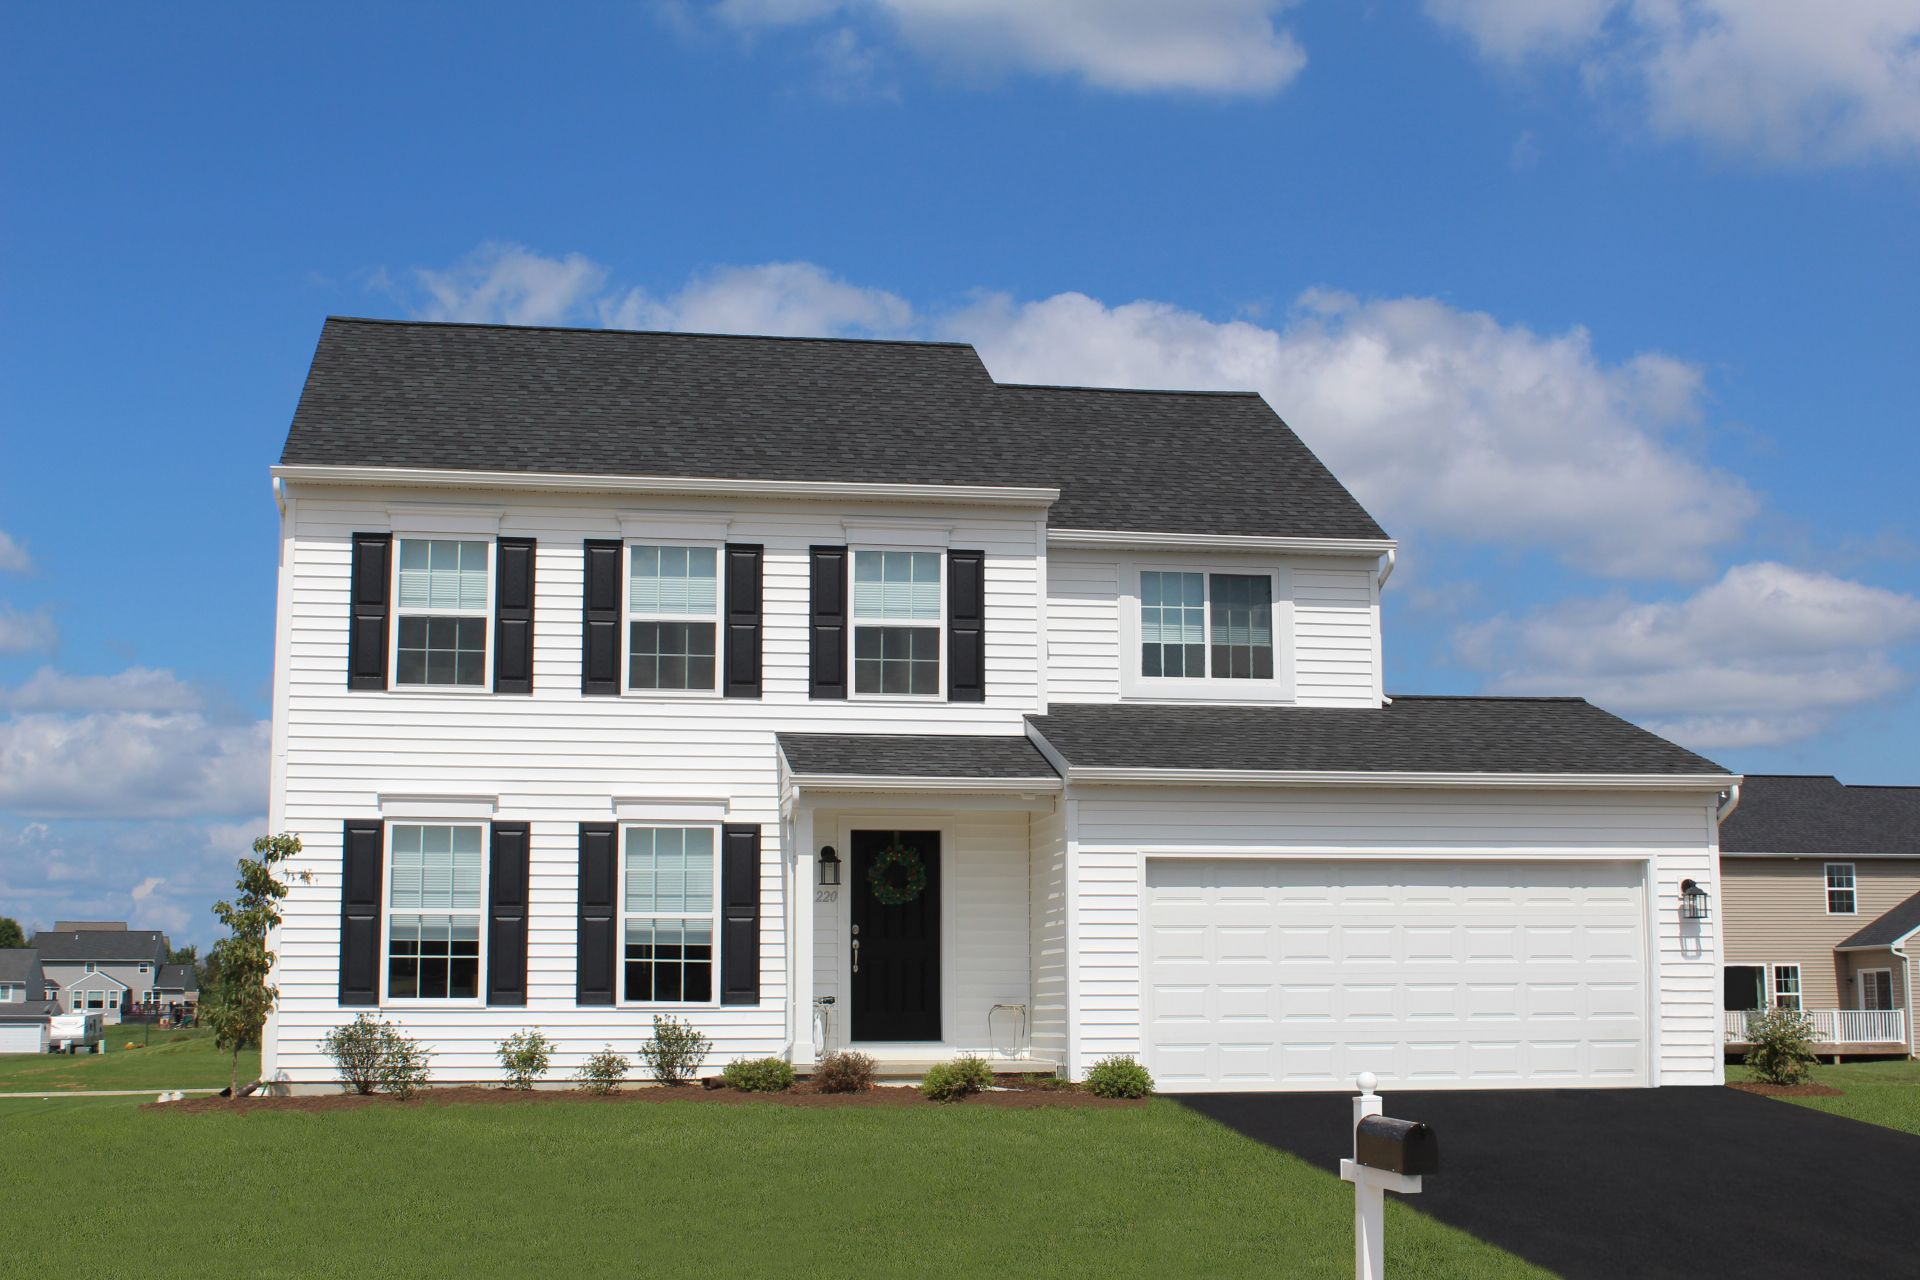 Your Modern Farmhouse Dream Home Can Be Affordable Too Let Us Show You How New Homes For Sale State College Pa Ne New Home Builders Home Builders New Homes